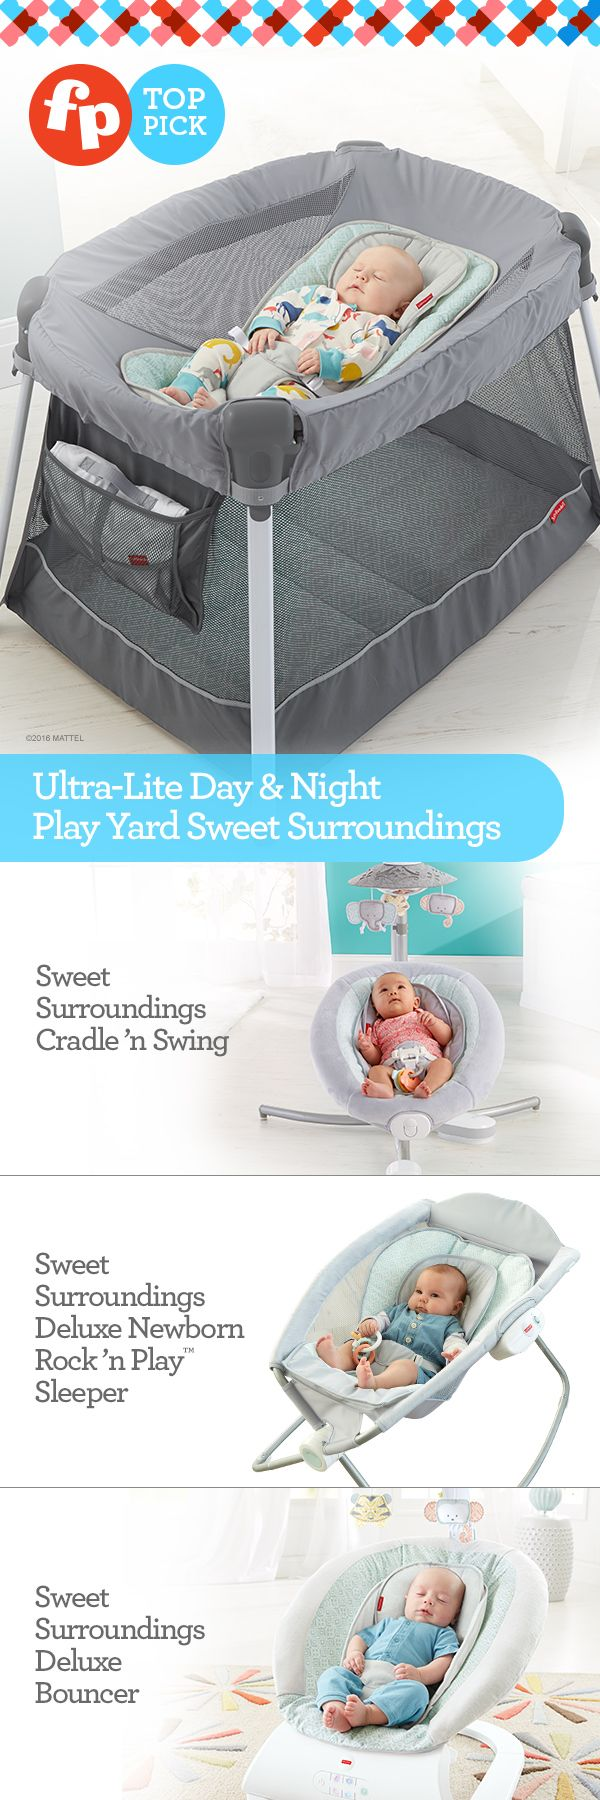 Surround baby in comfort and style with the Sweet Surroundings Collection.  Take some weight off your shoulders with a portable play yard that's just half the weight of other popular play yards, with all the same great features, and more. At only 15 lbs., it's super lightweight and easy-peasy to pop up, take down  and pack away in just a few quick, simple steps. The Ultra-Lite Day & Night Play Yard is a night saver – and a life saver. View the entire collection at Target.com